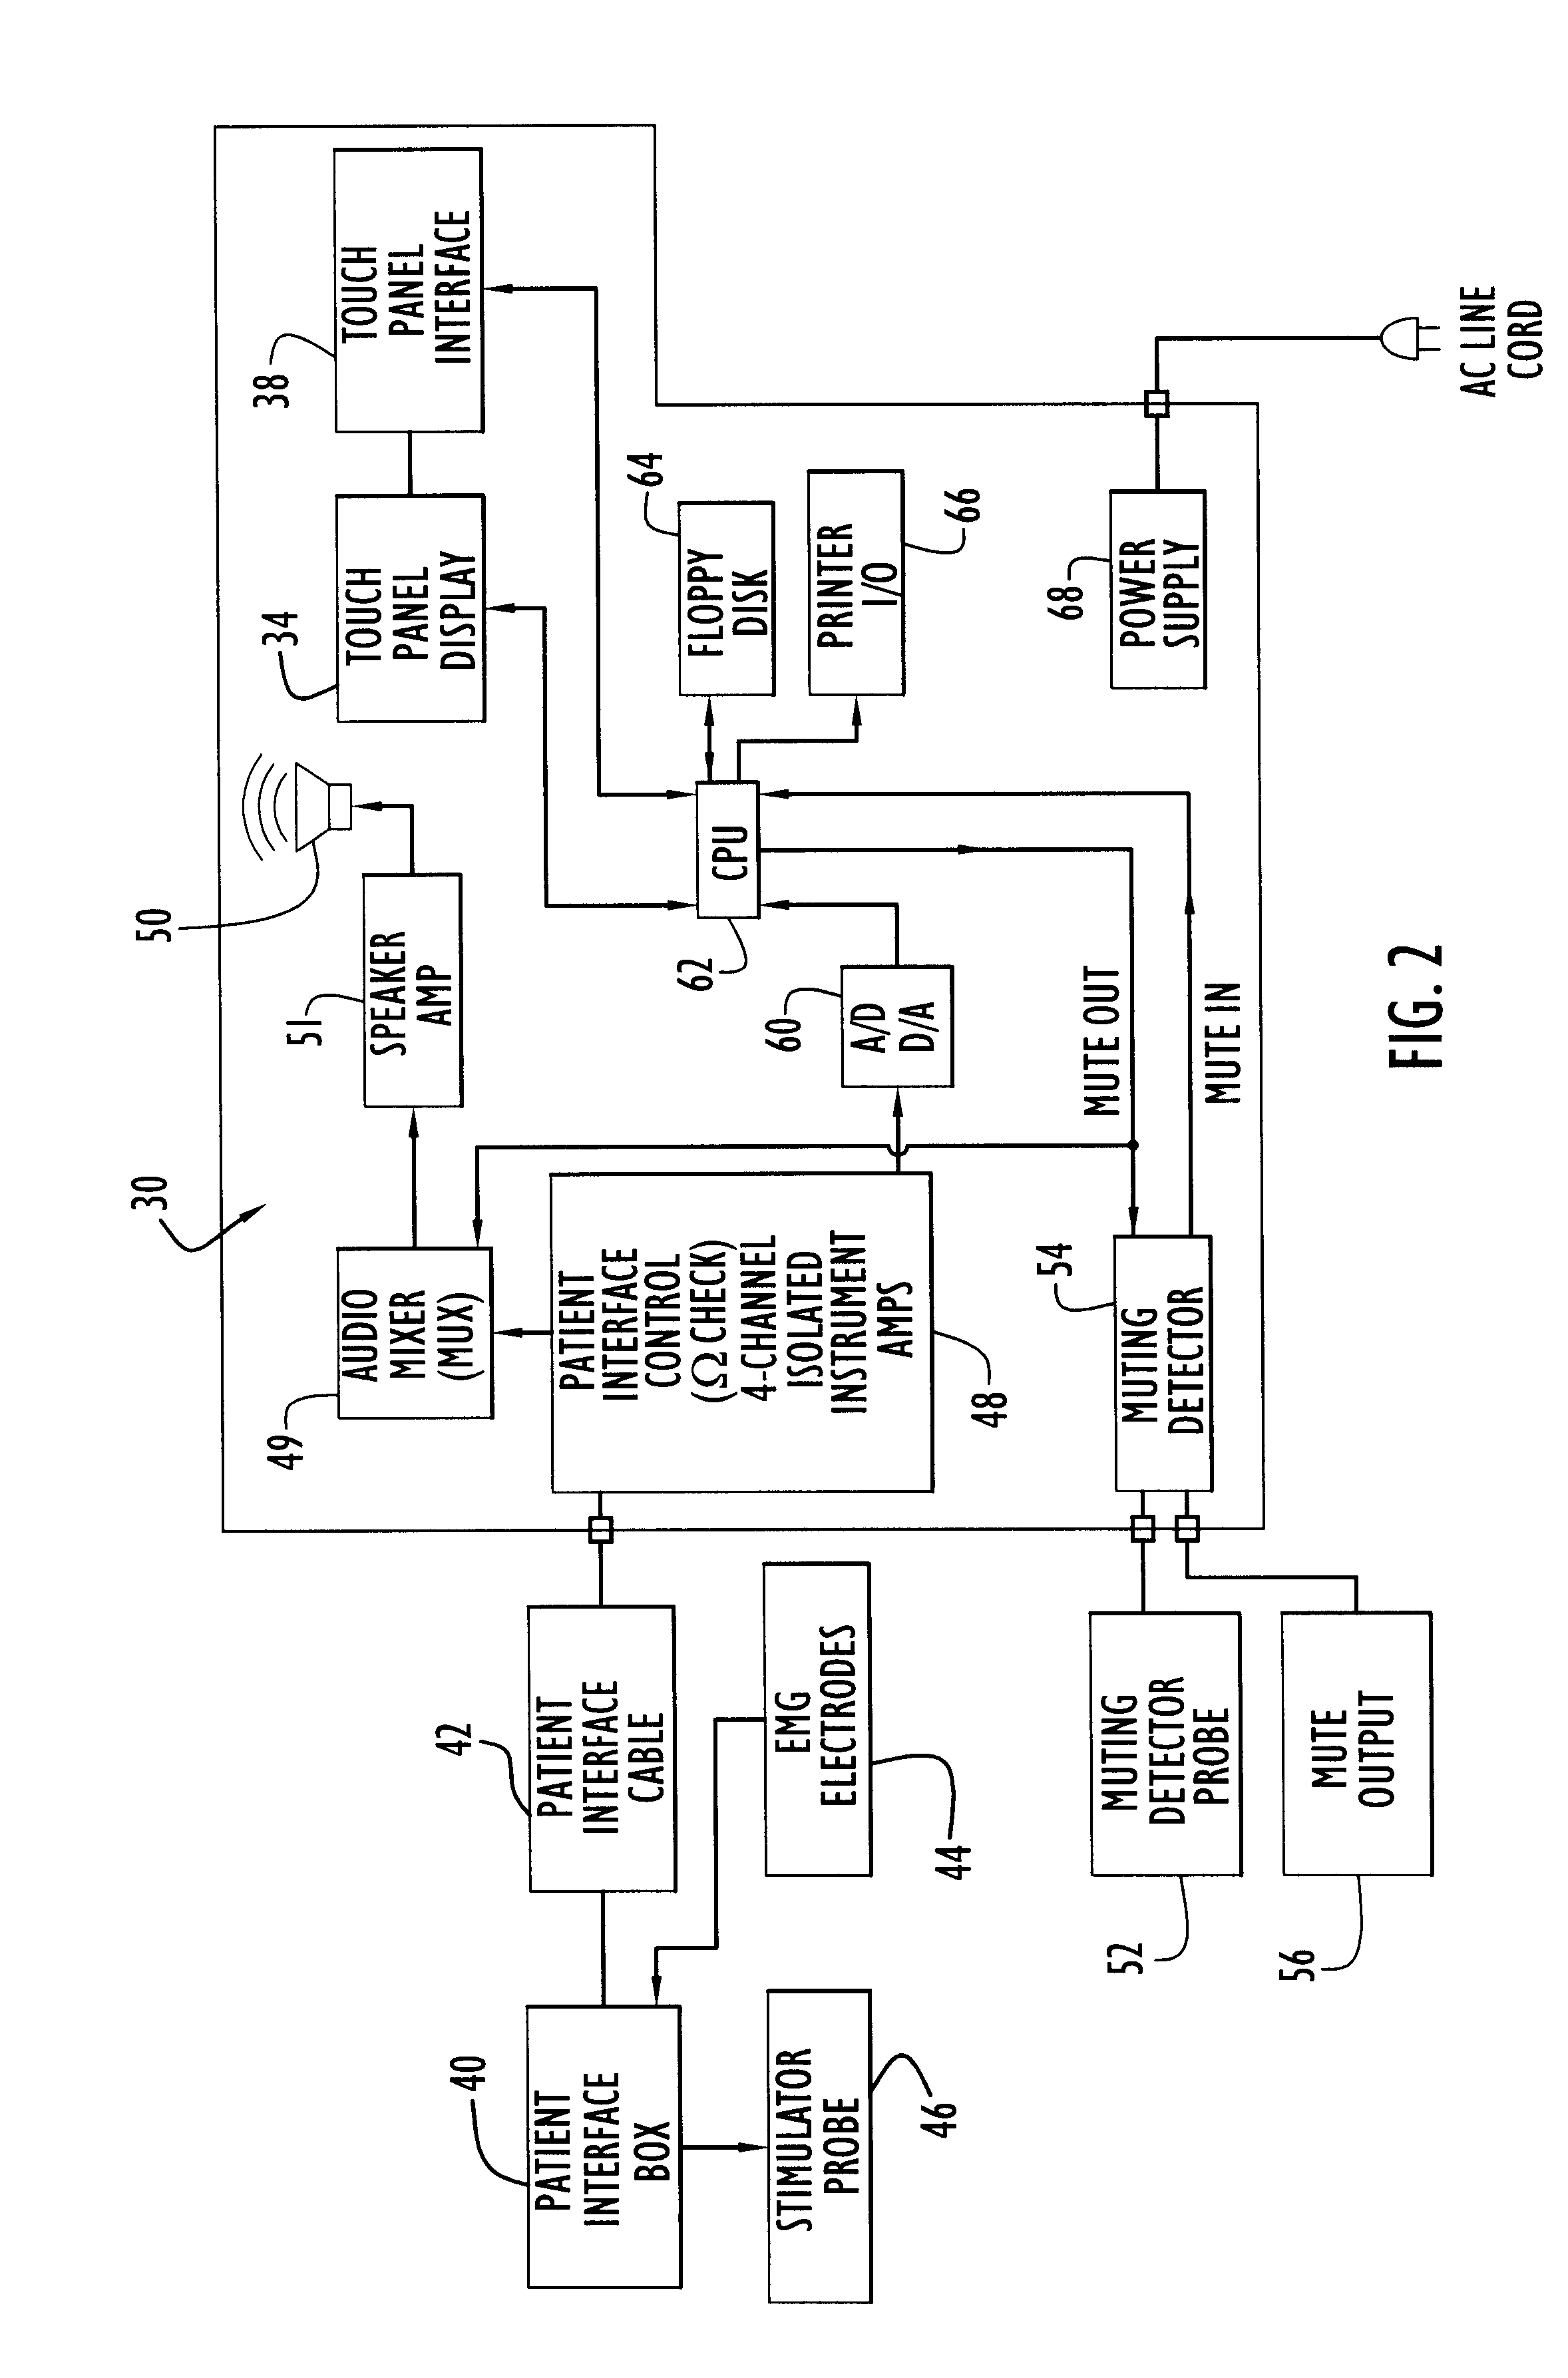 patent us6334068 - intraoperative neuroelectrophysiological monitor